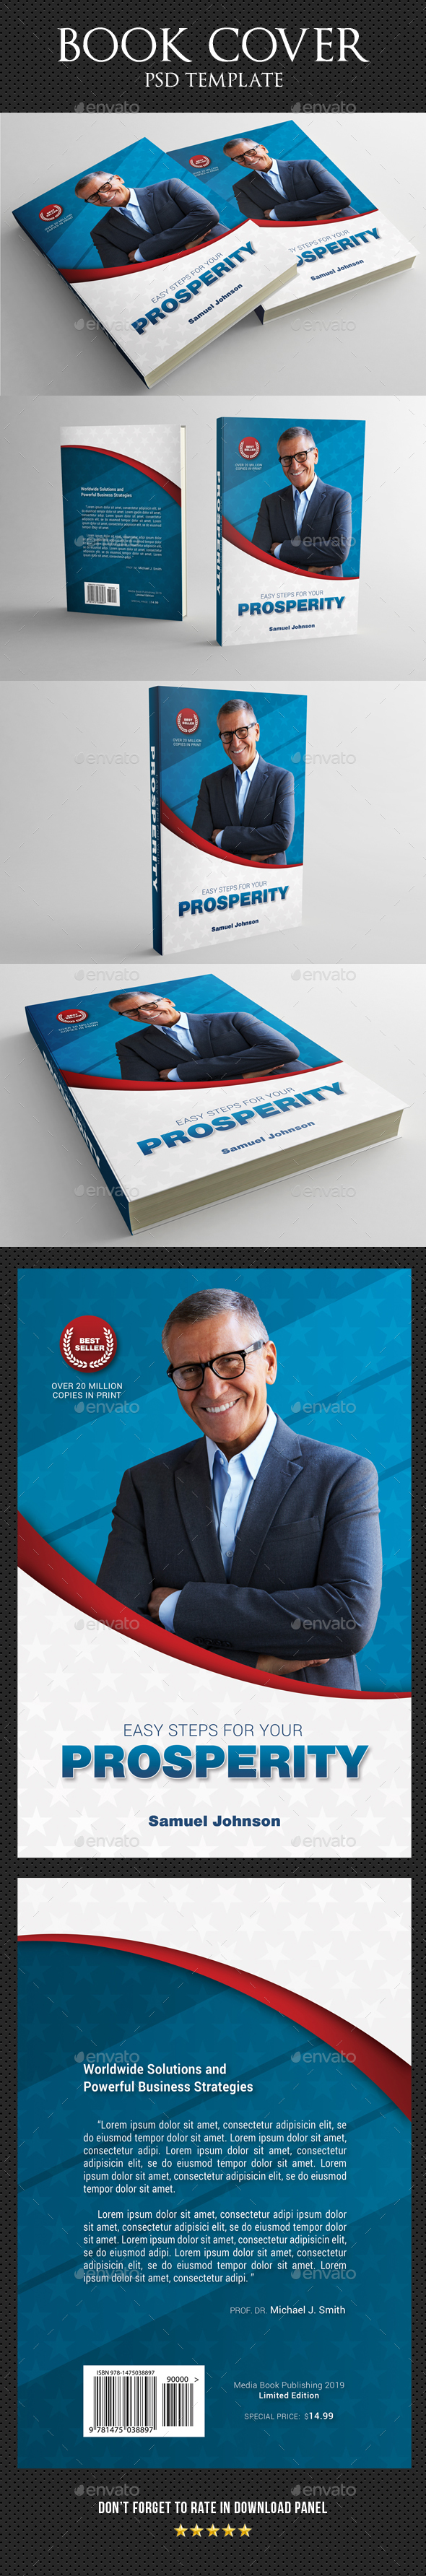 Book Cover Template 54 - Miscellaneous Print Templates